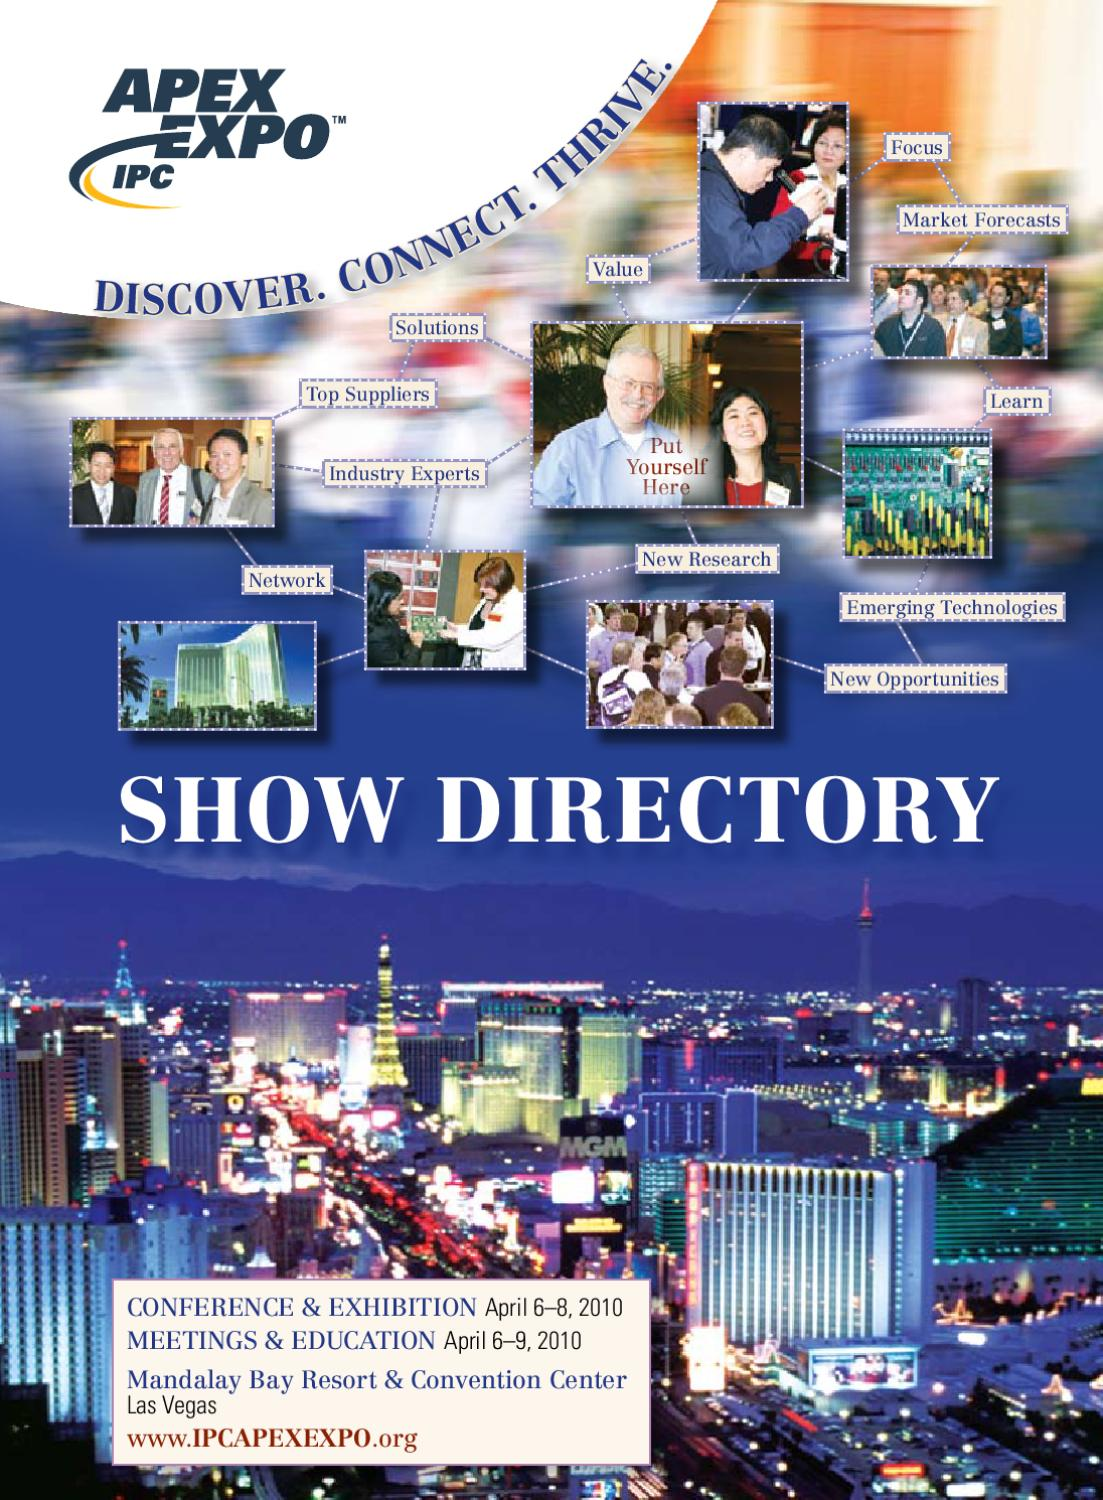 Ipc Apex Expo 2010 Show Directory By Issuu Circuit Boards Led Pcb Metal Core Pcbs Mcpcbs Mc Light